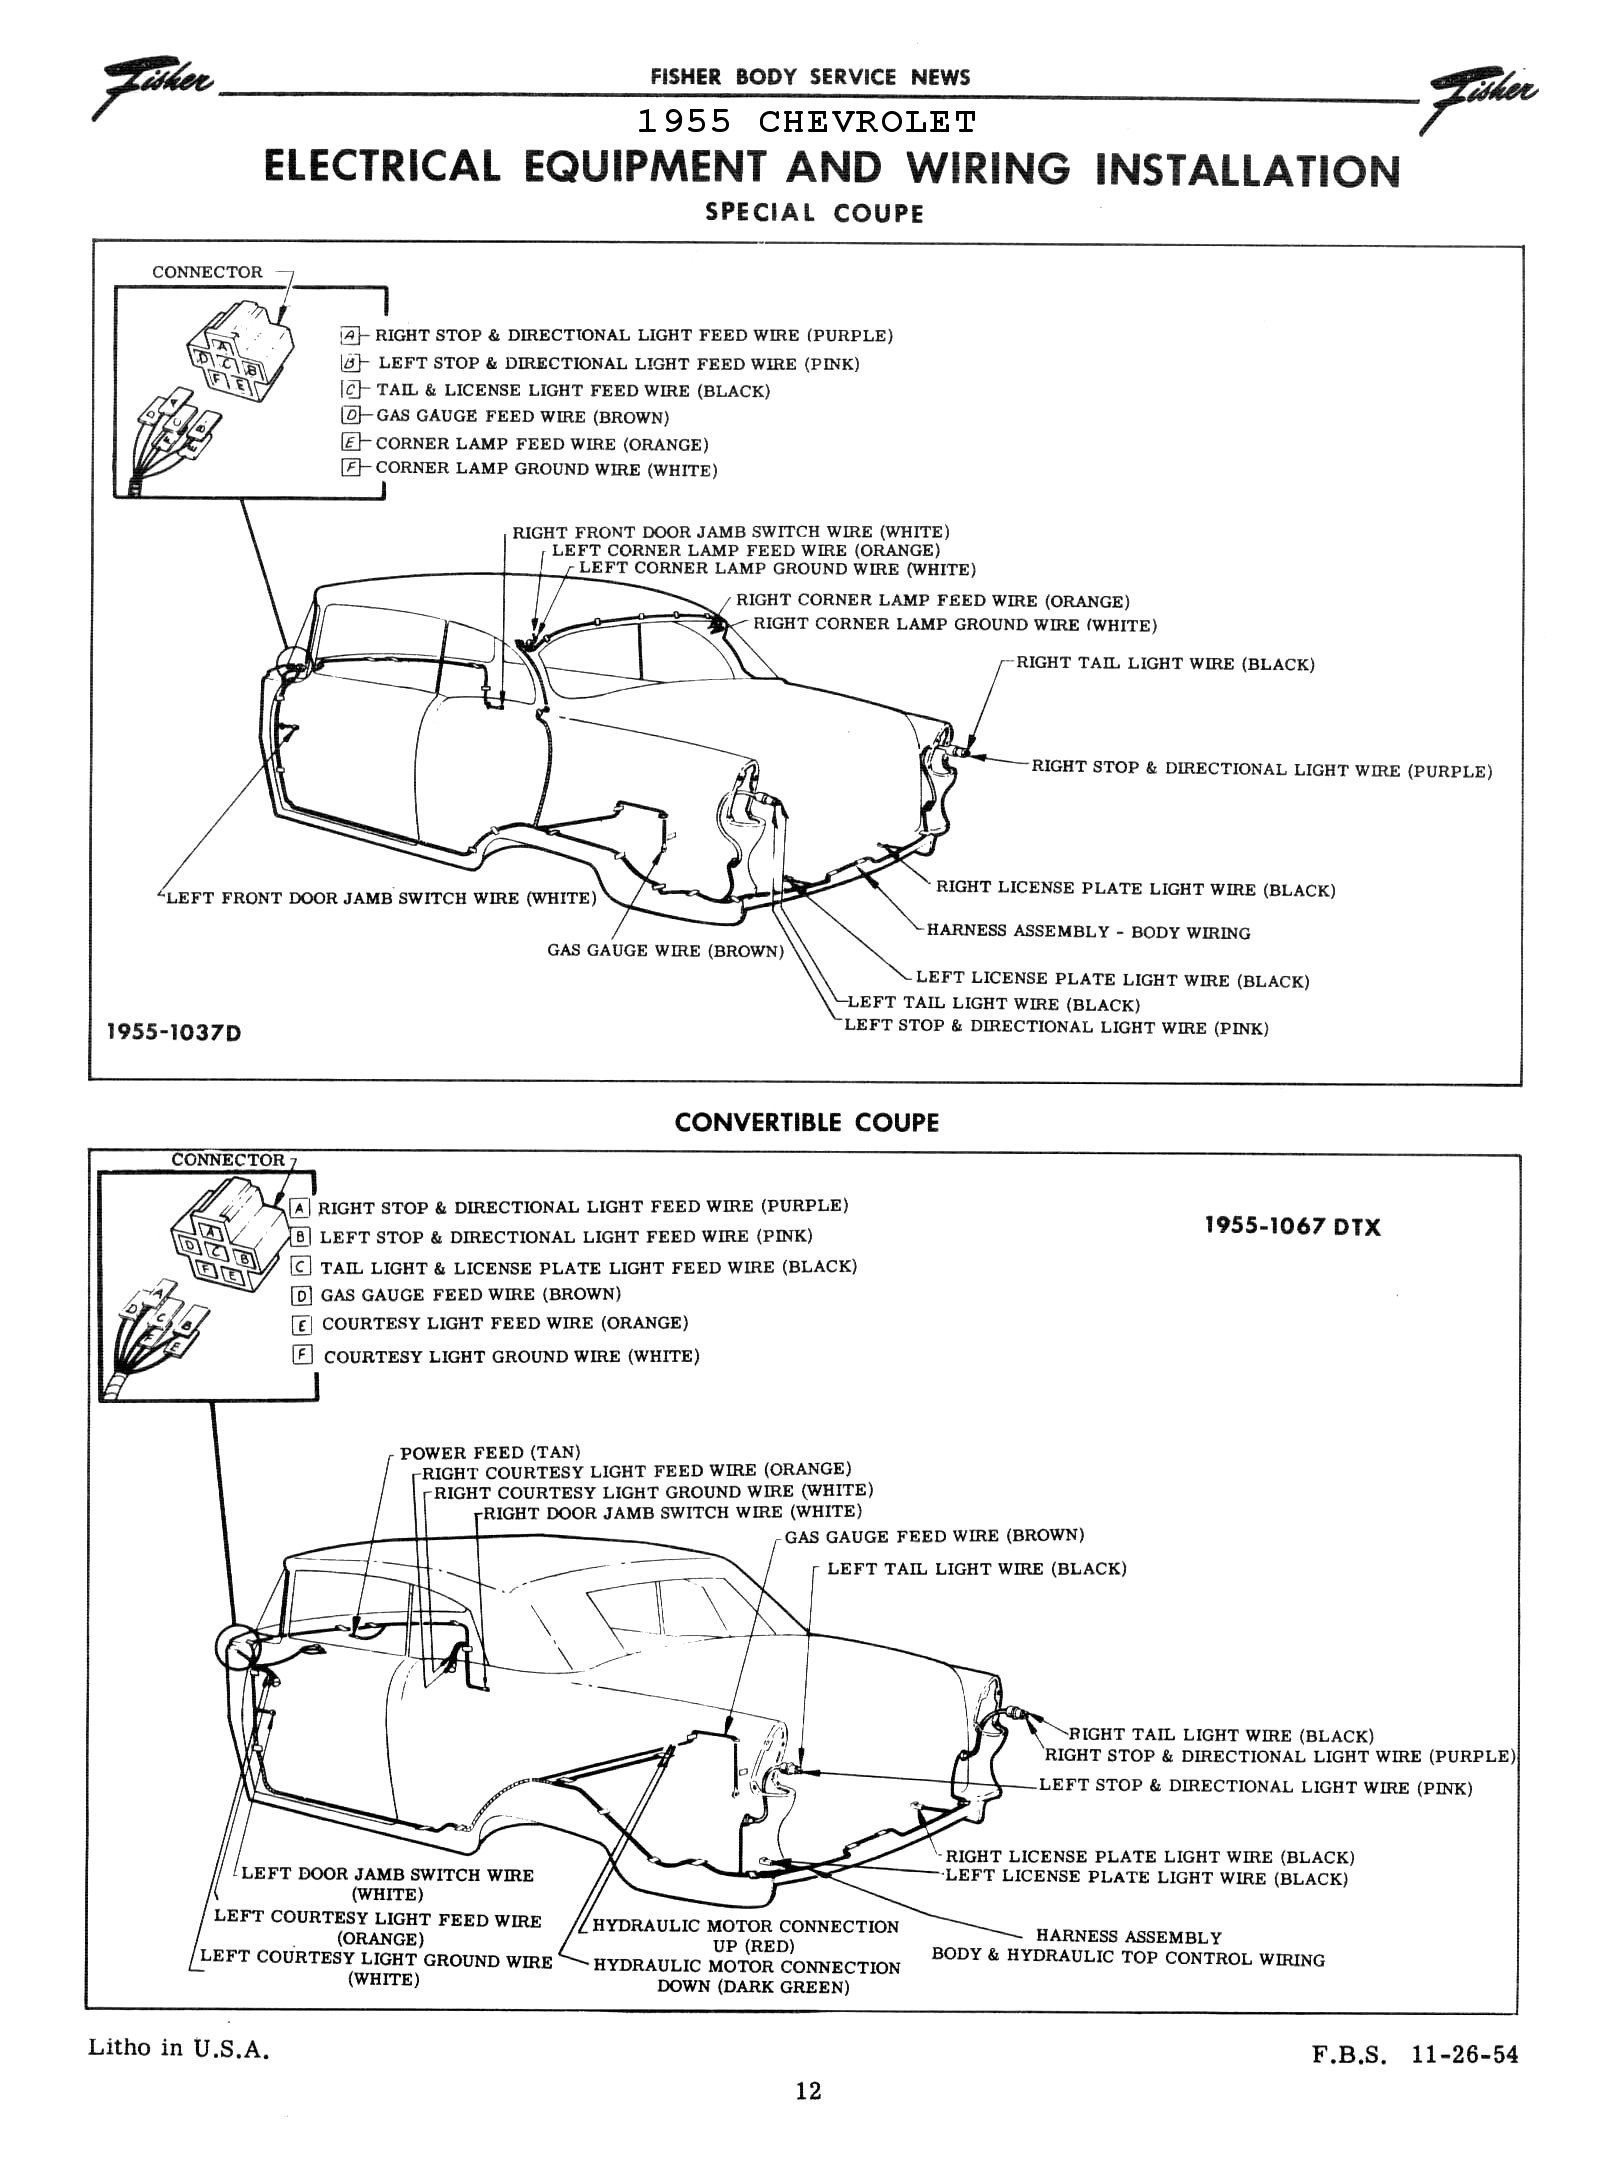 Chevy Wiring Diagrams Turn Light Switch Diagram 1955 Body 3